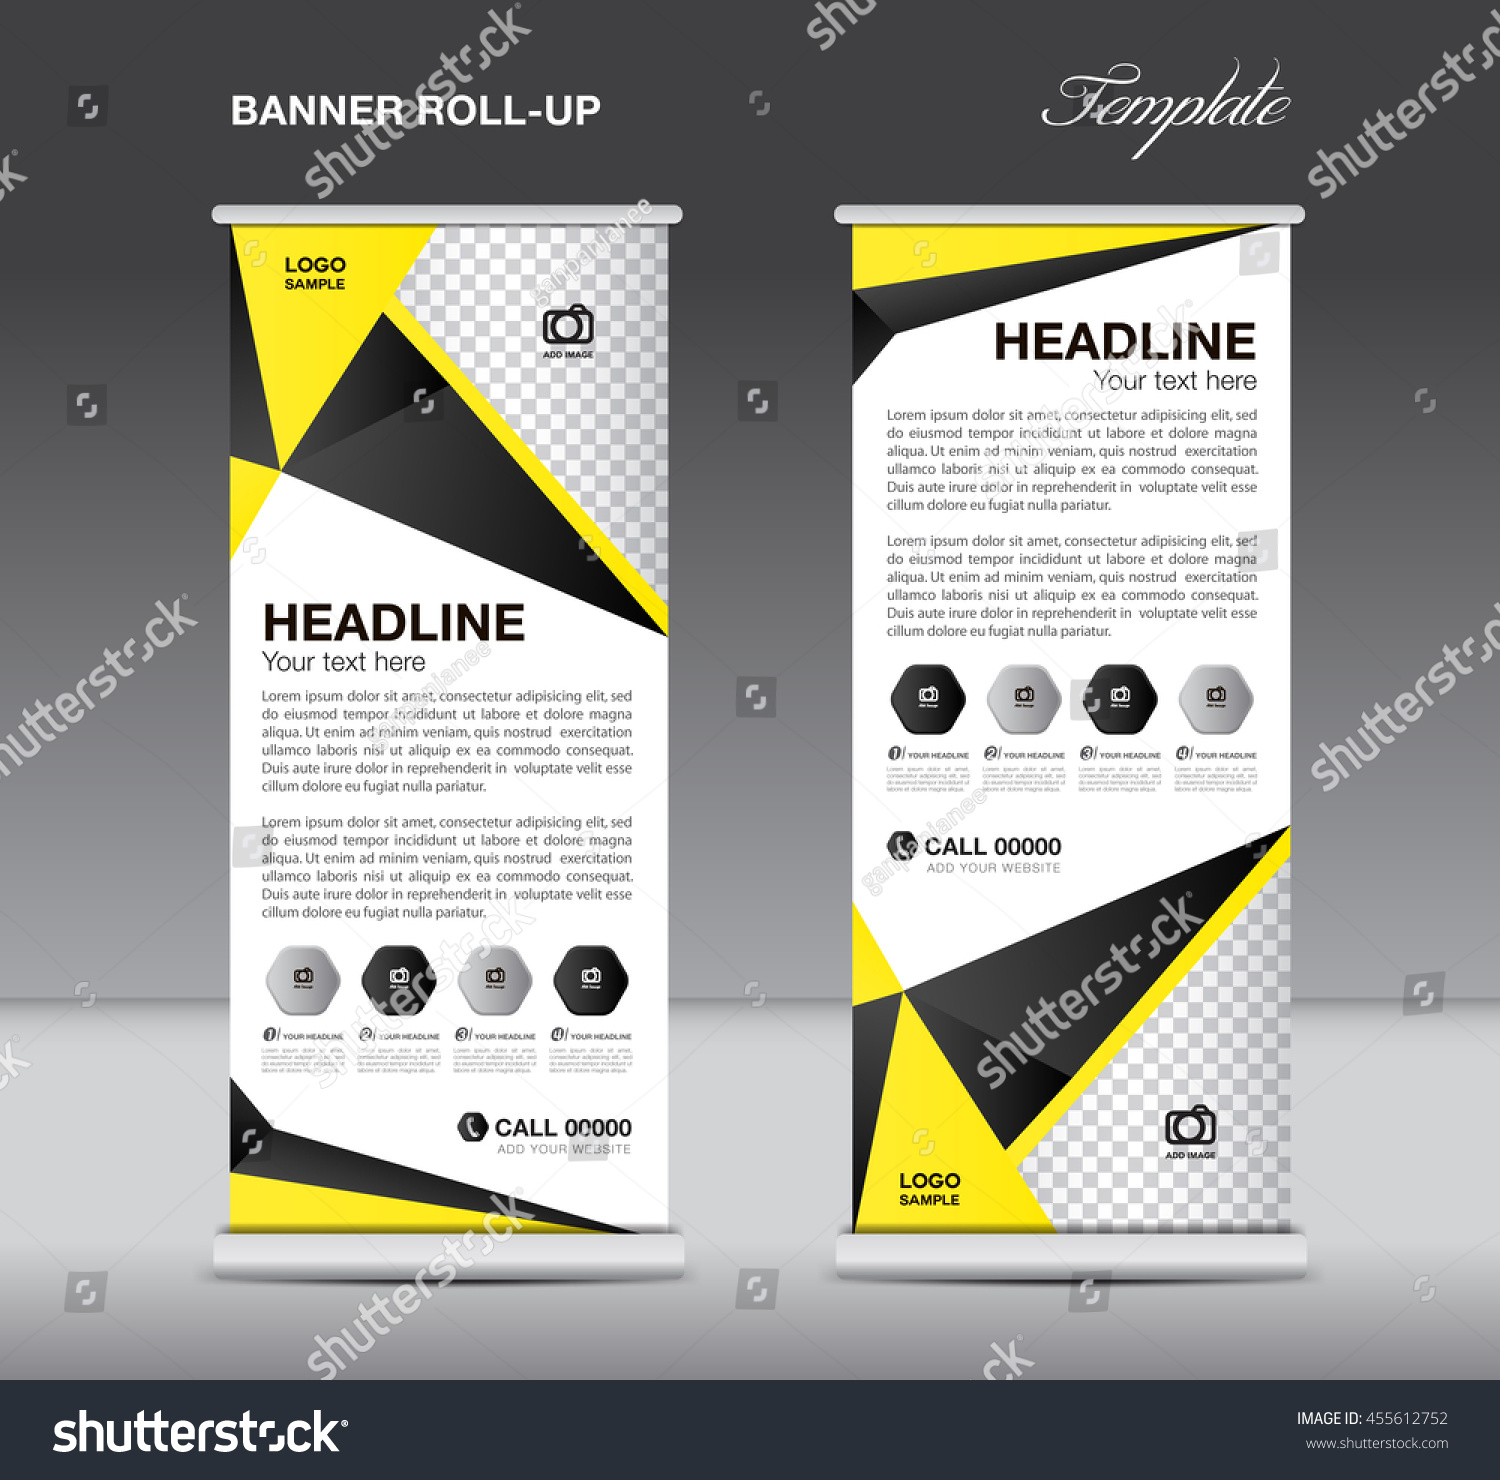 black and yellow roll up banner stand template flyer design black and yellow roll up banner stand template flyer design display advertisement layout